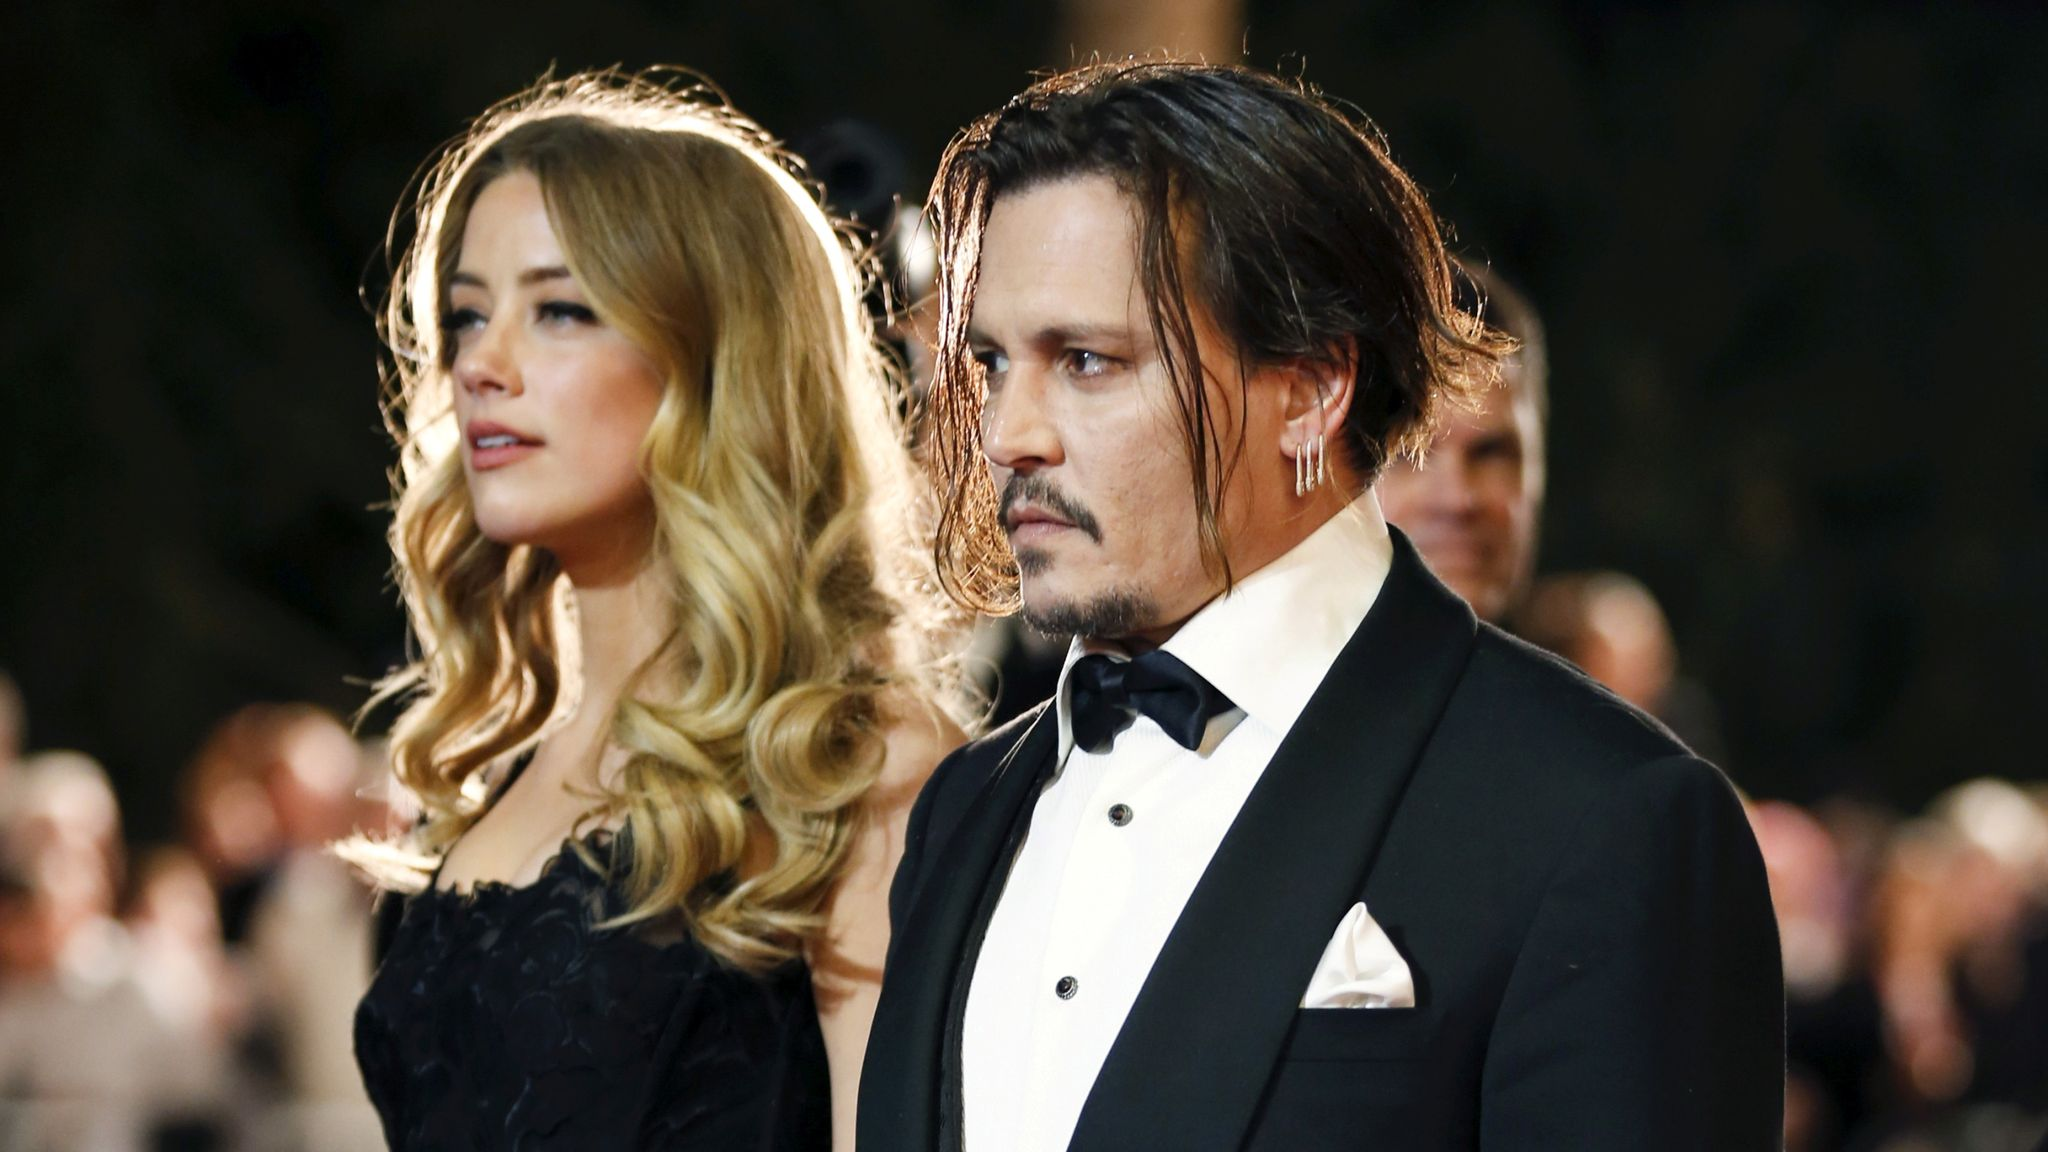 Amber Heard and Johnny Depp when they were together